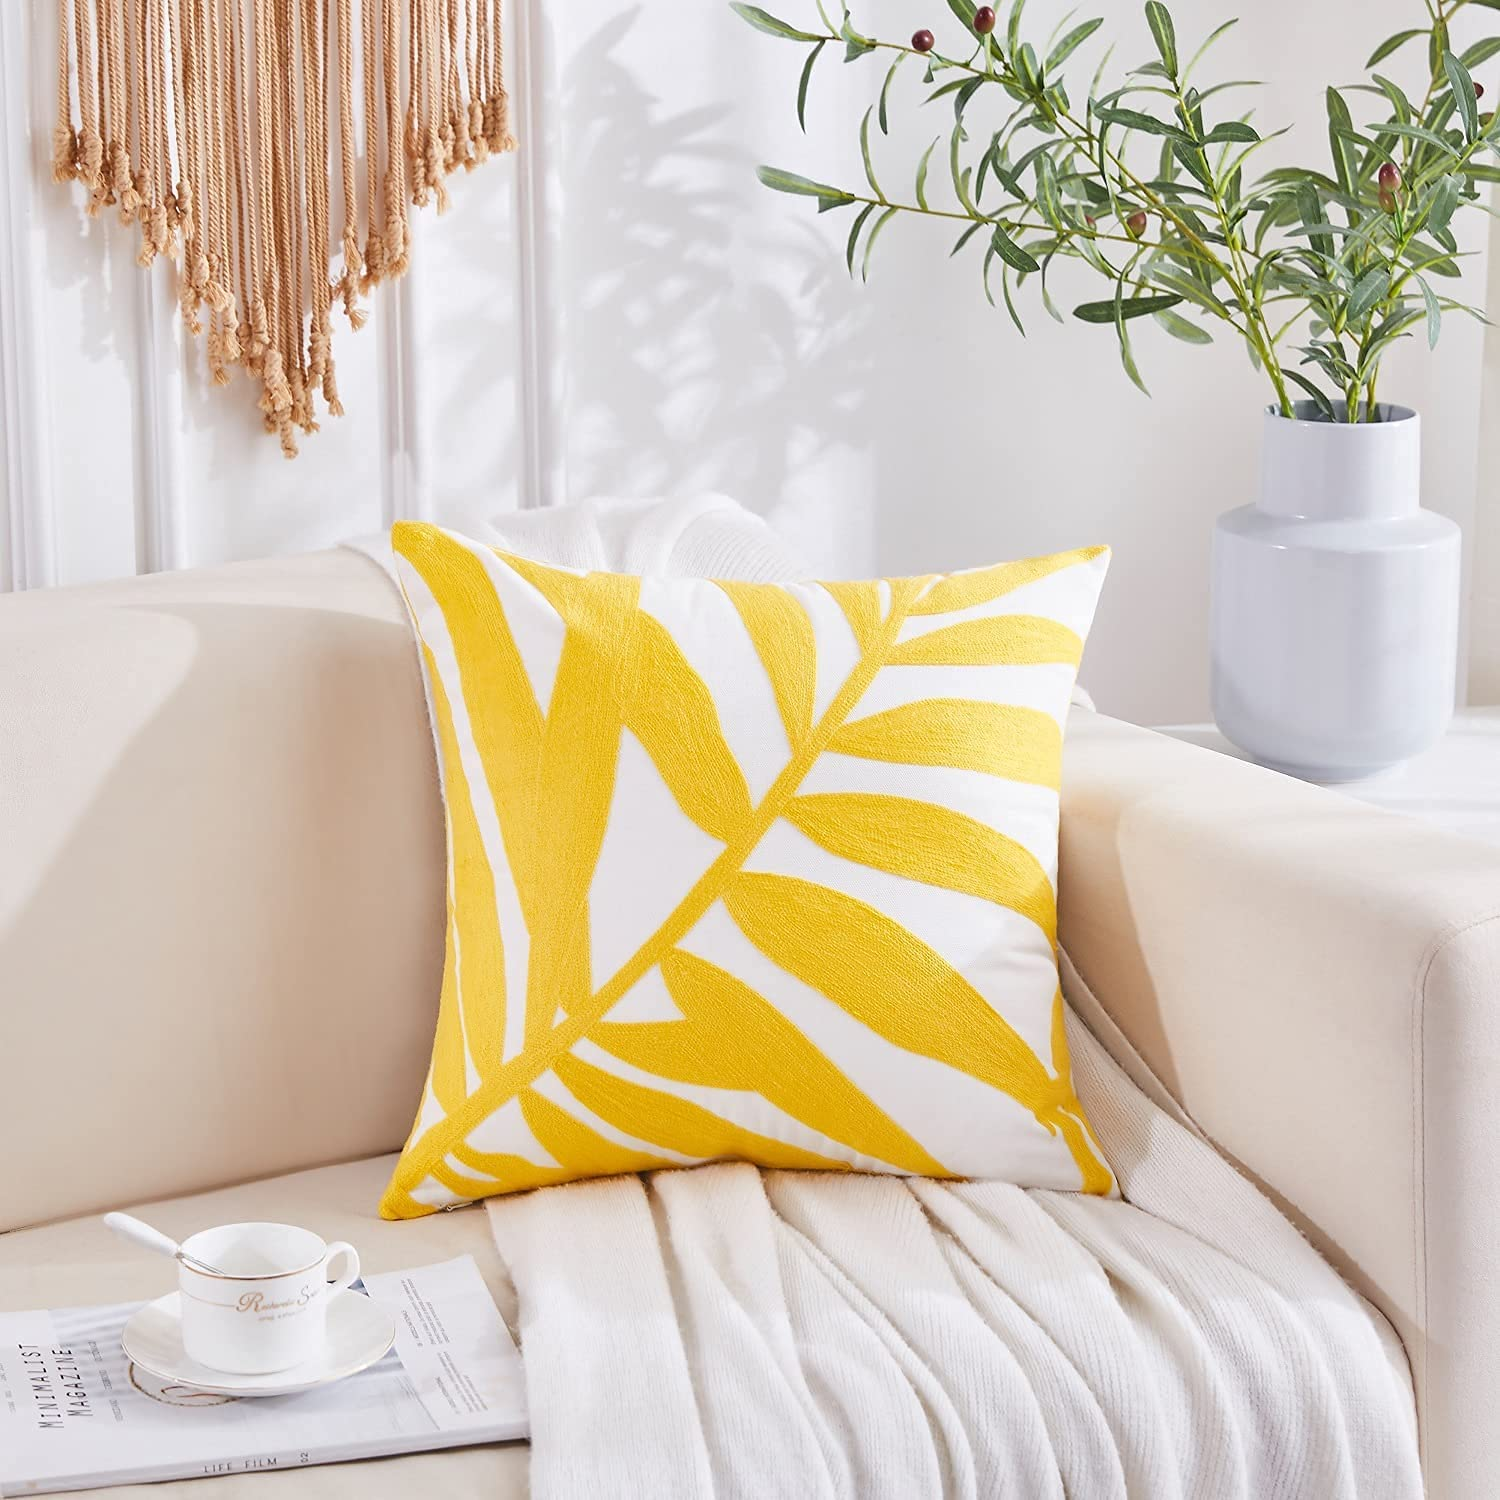 Embroidered throw pillow covers 18X18 decorative farmhouse for living room outdoor pillows for patio furniture throw pillows for couch cojines decorativos para sala fall decor for home Christmas Chair